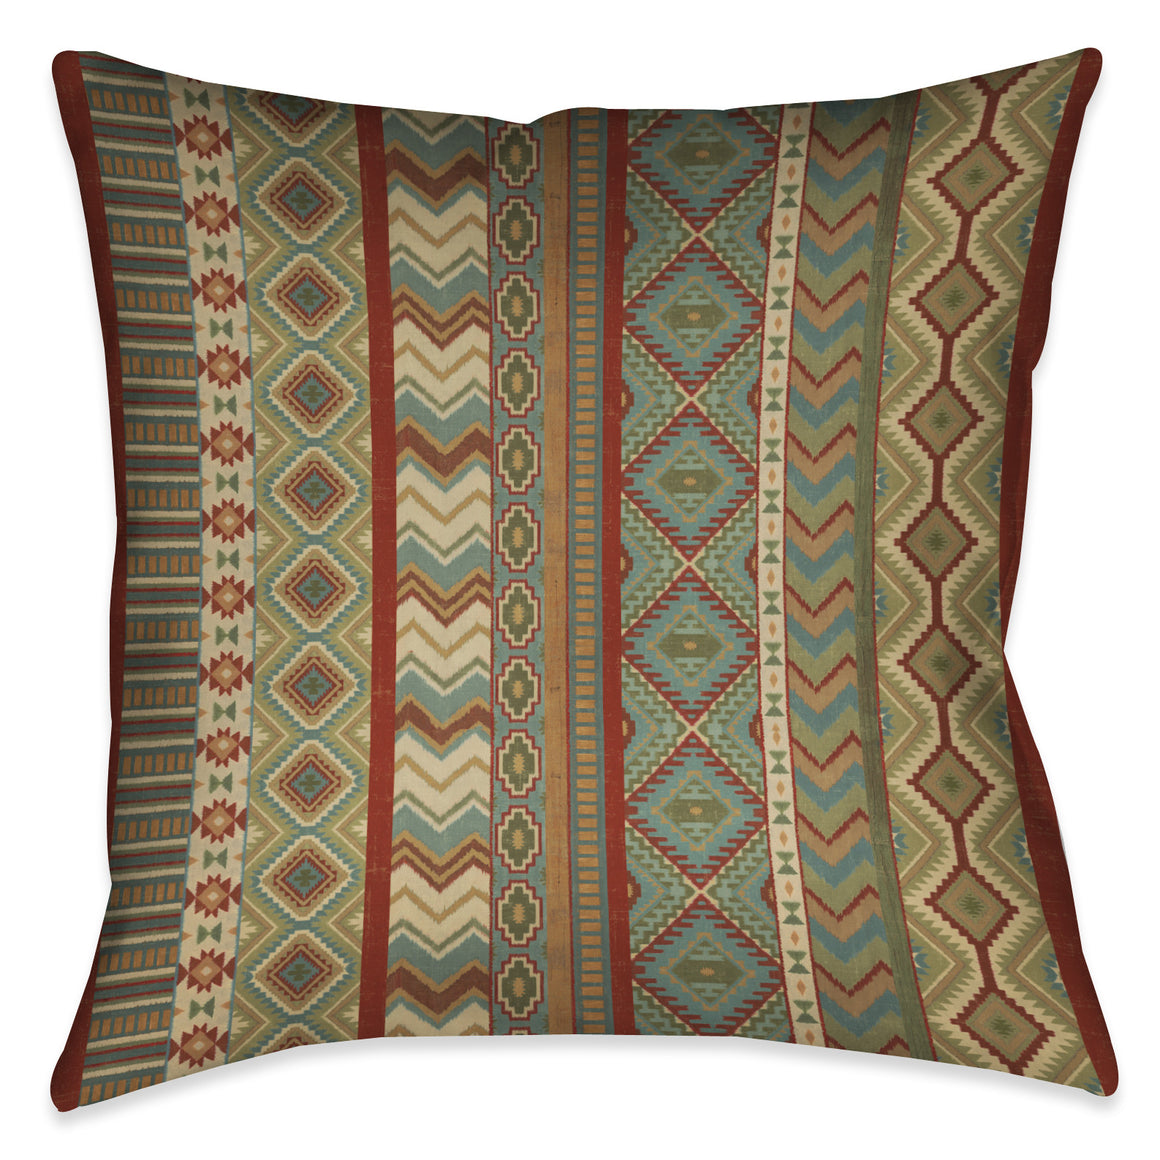 Country Mood III Indoor Decorative Pillow